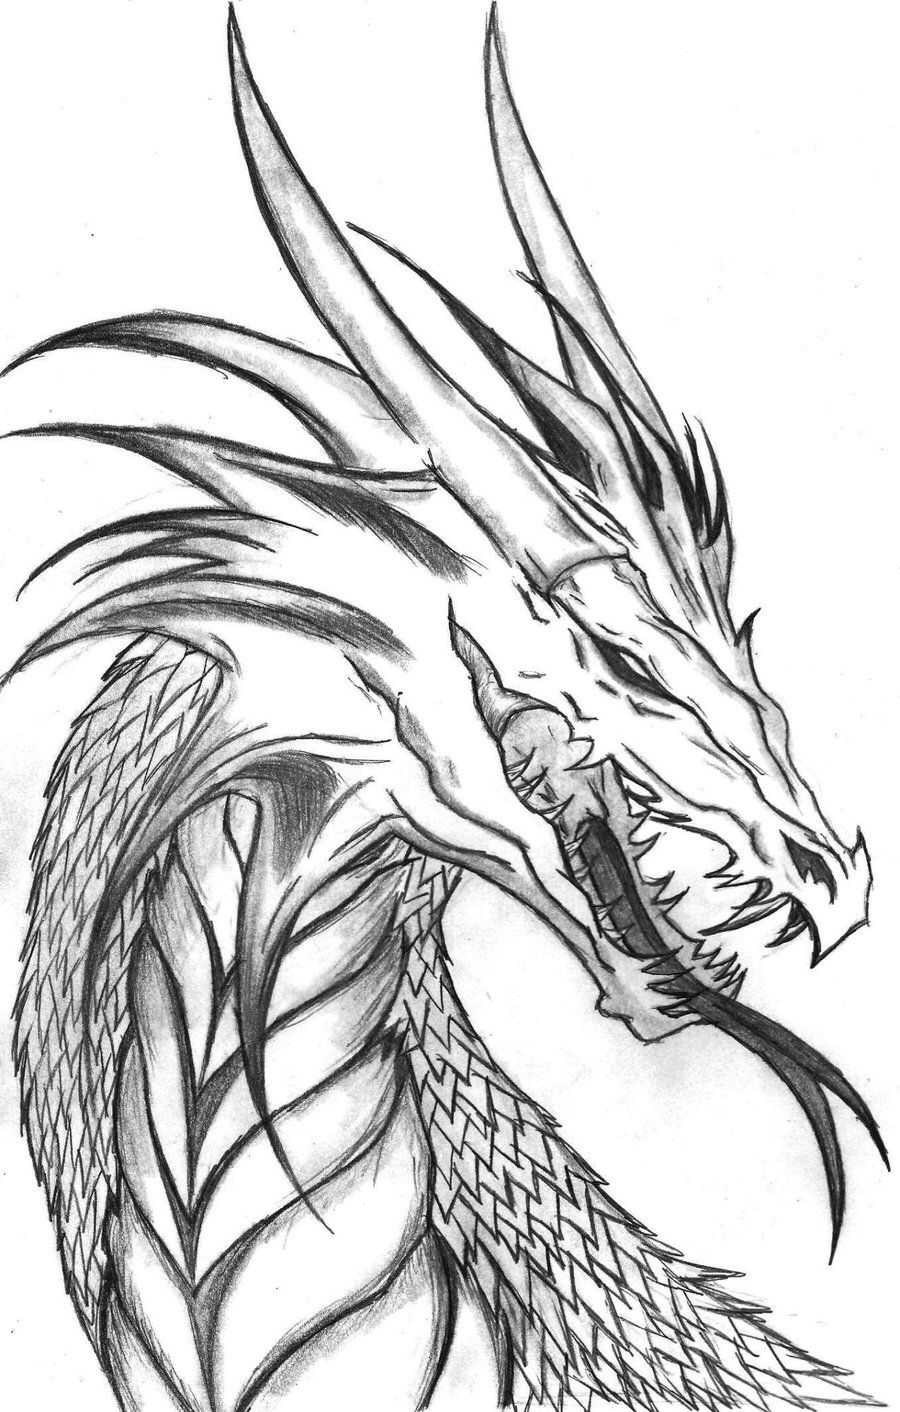 Image From Http Www Bestcoloringpagesforkids Com Wp Content Uploads 2013 05 Dragon Head Coloring Page Jp Dessin De Dragon Coloriage Dragon Dessin Dragon Tete